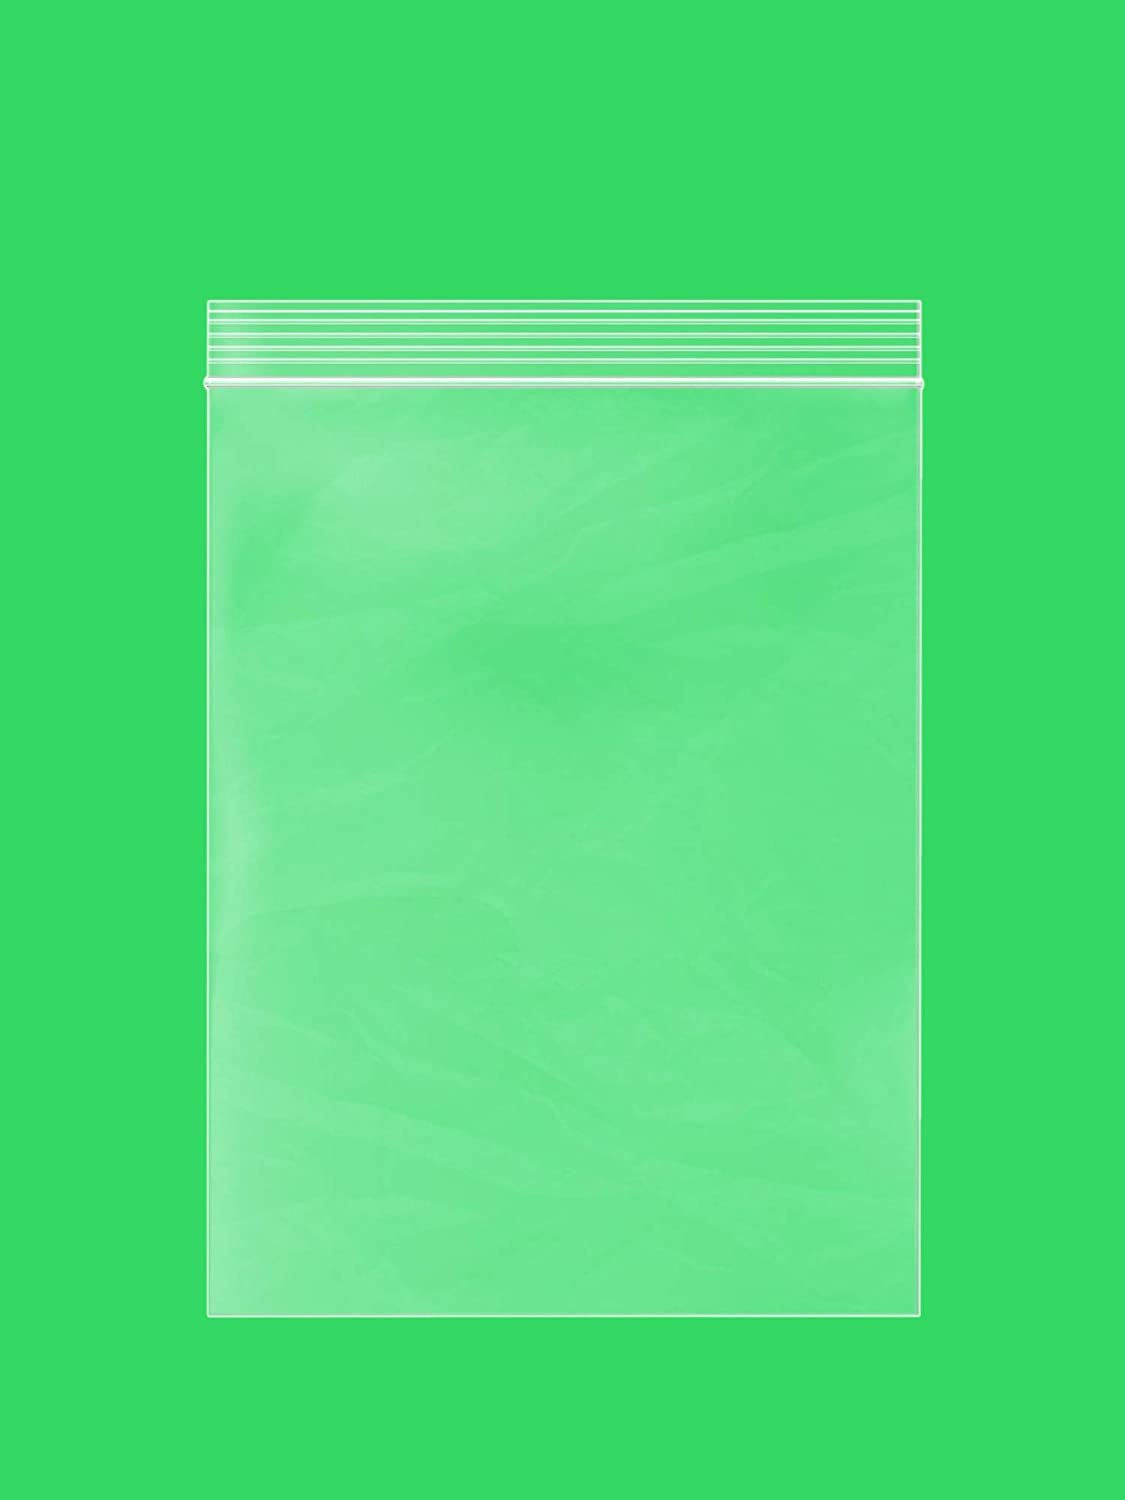 Clear Plastic RECLOSABLE Zip Bags - Limited time trial price Challenge the lowest price of Japan ☆ Bulk Case 8